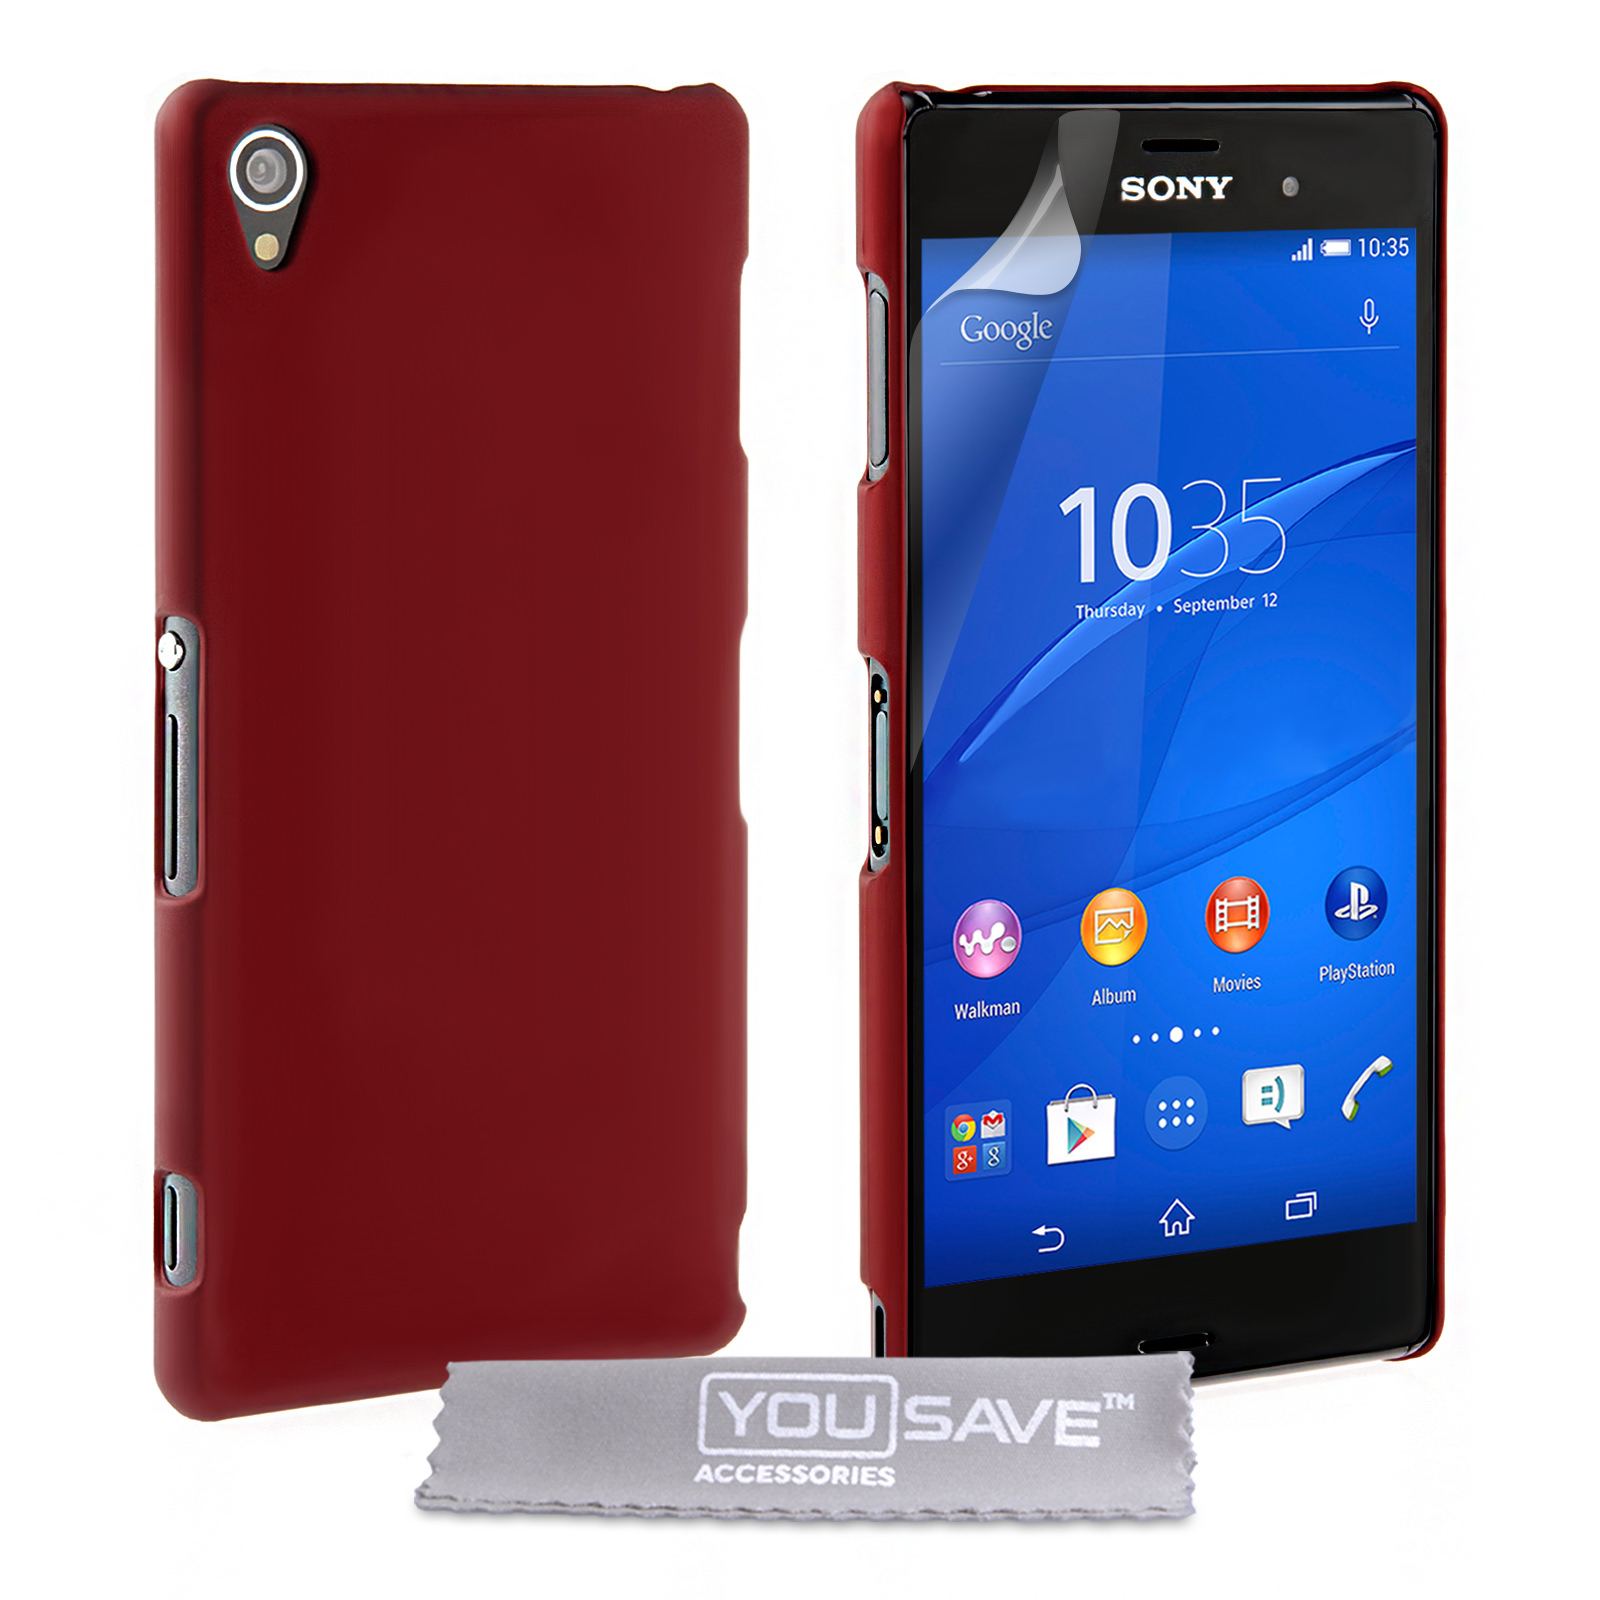 YouSave Accessories Sony Xperia Z3 Hard Hybrid Case